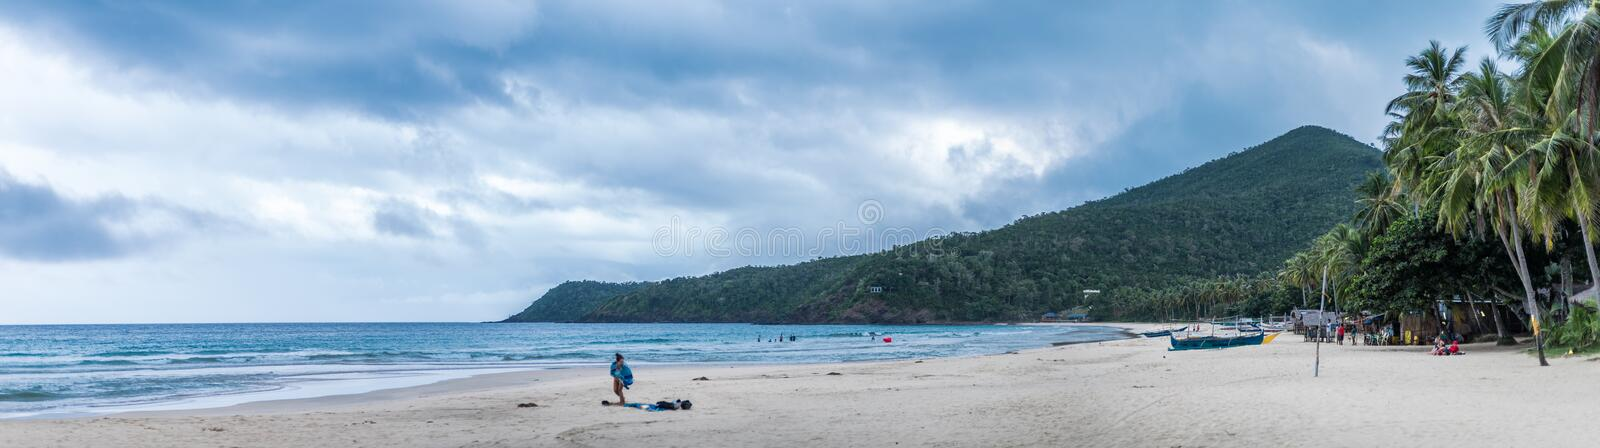 Une vue panoramique d'une plage à Philippines photos libres de droits